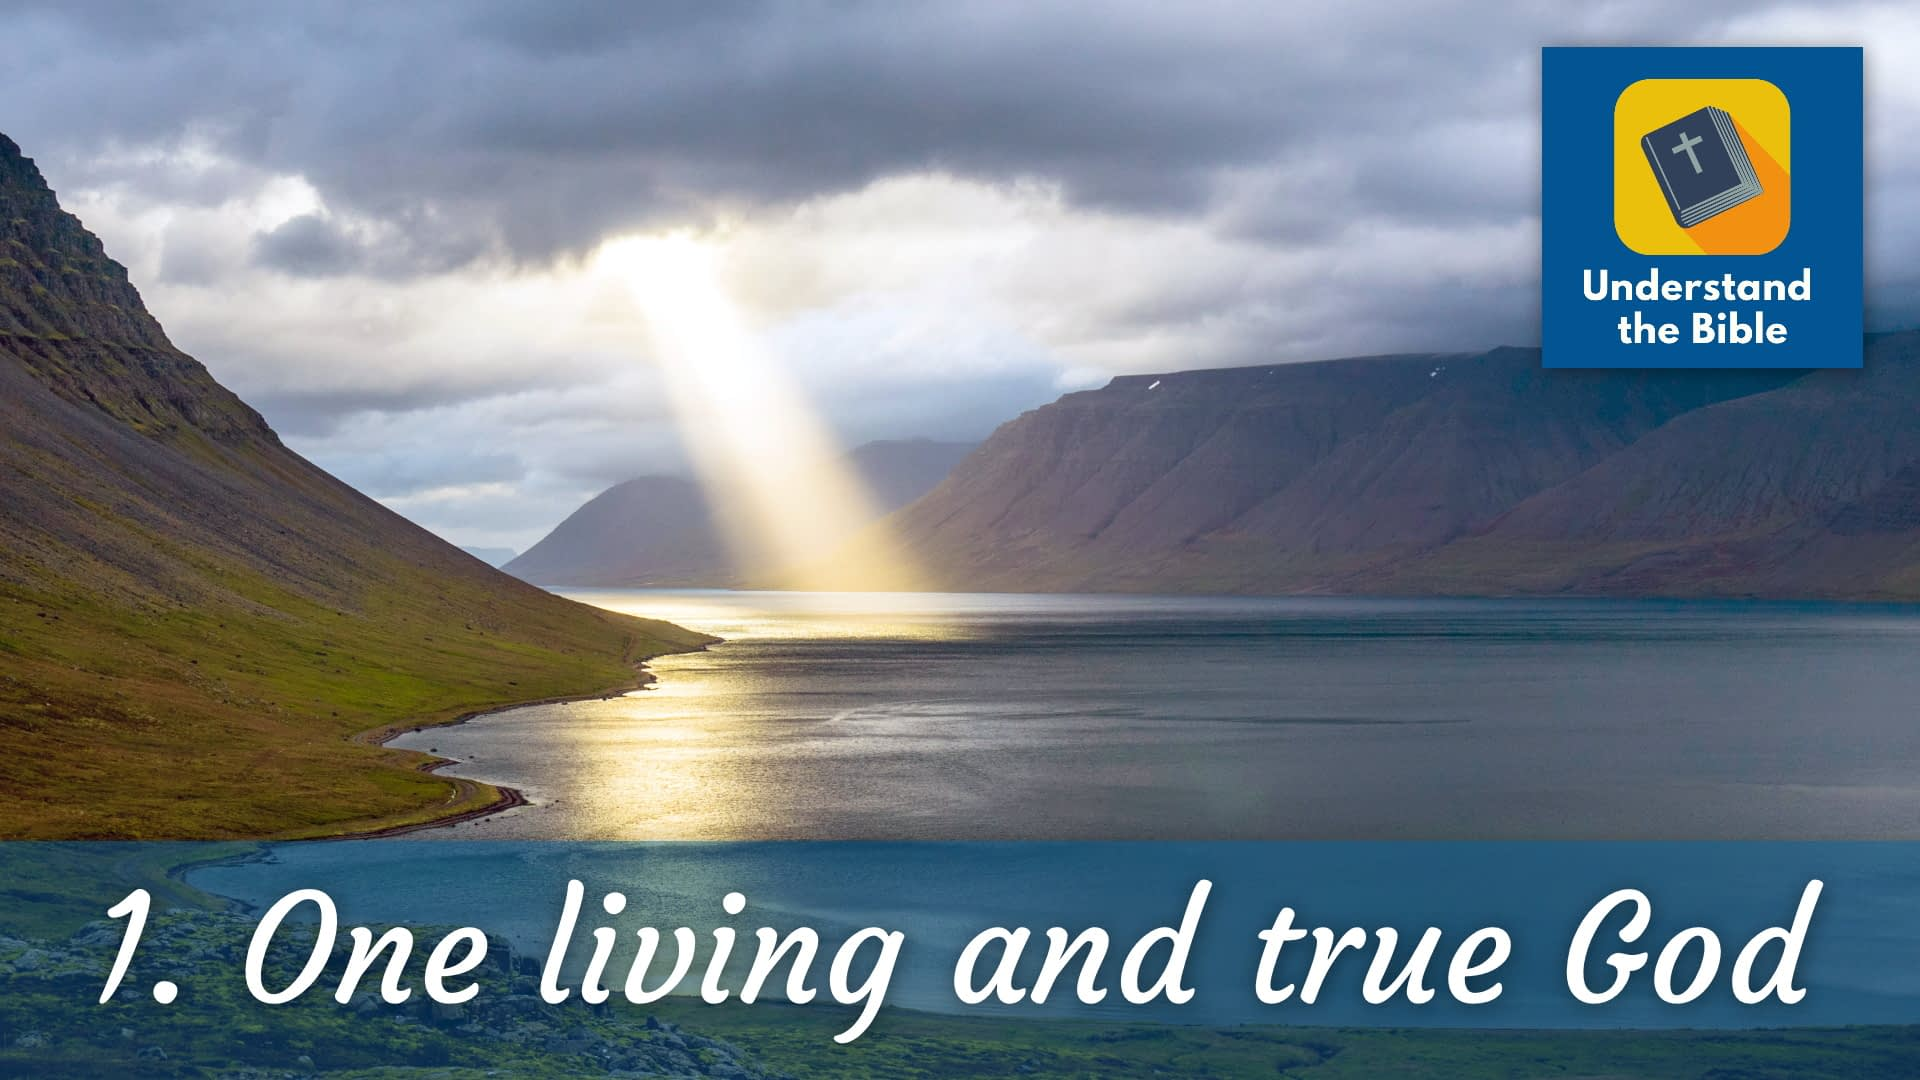 There is one living and true God